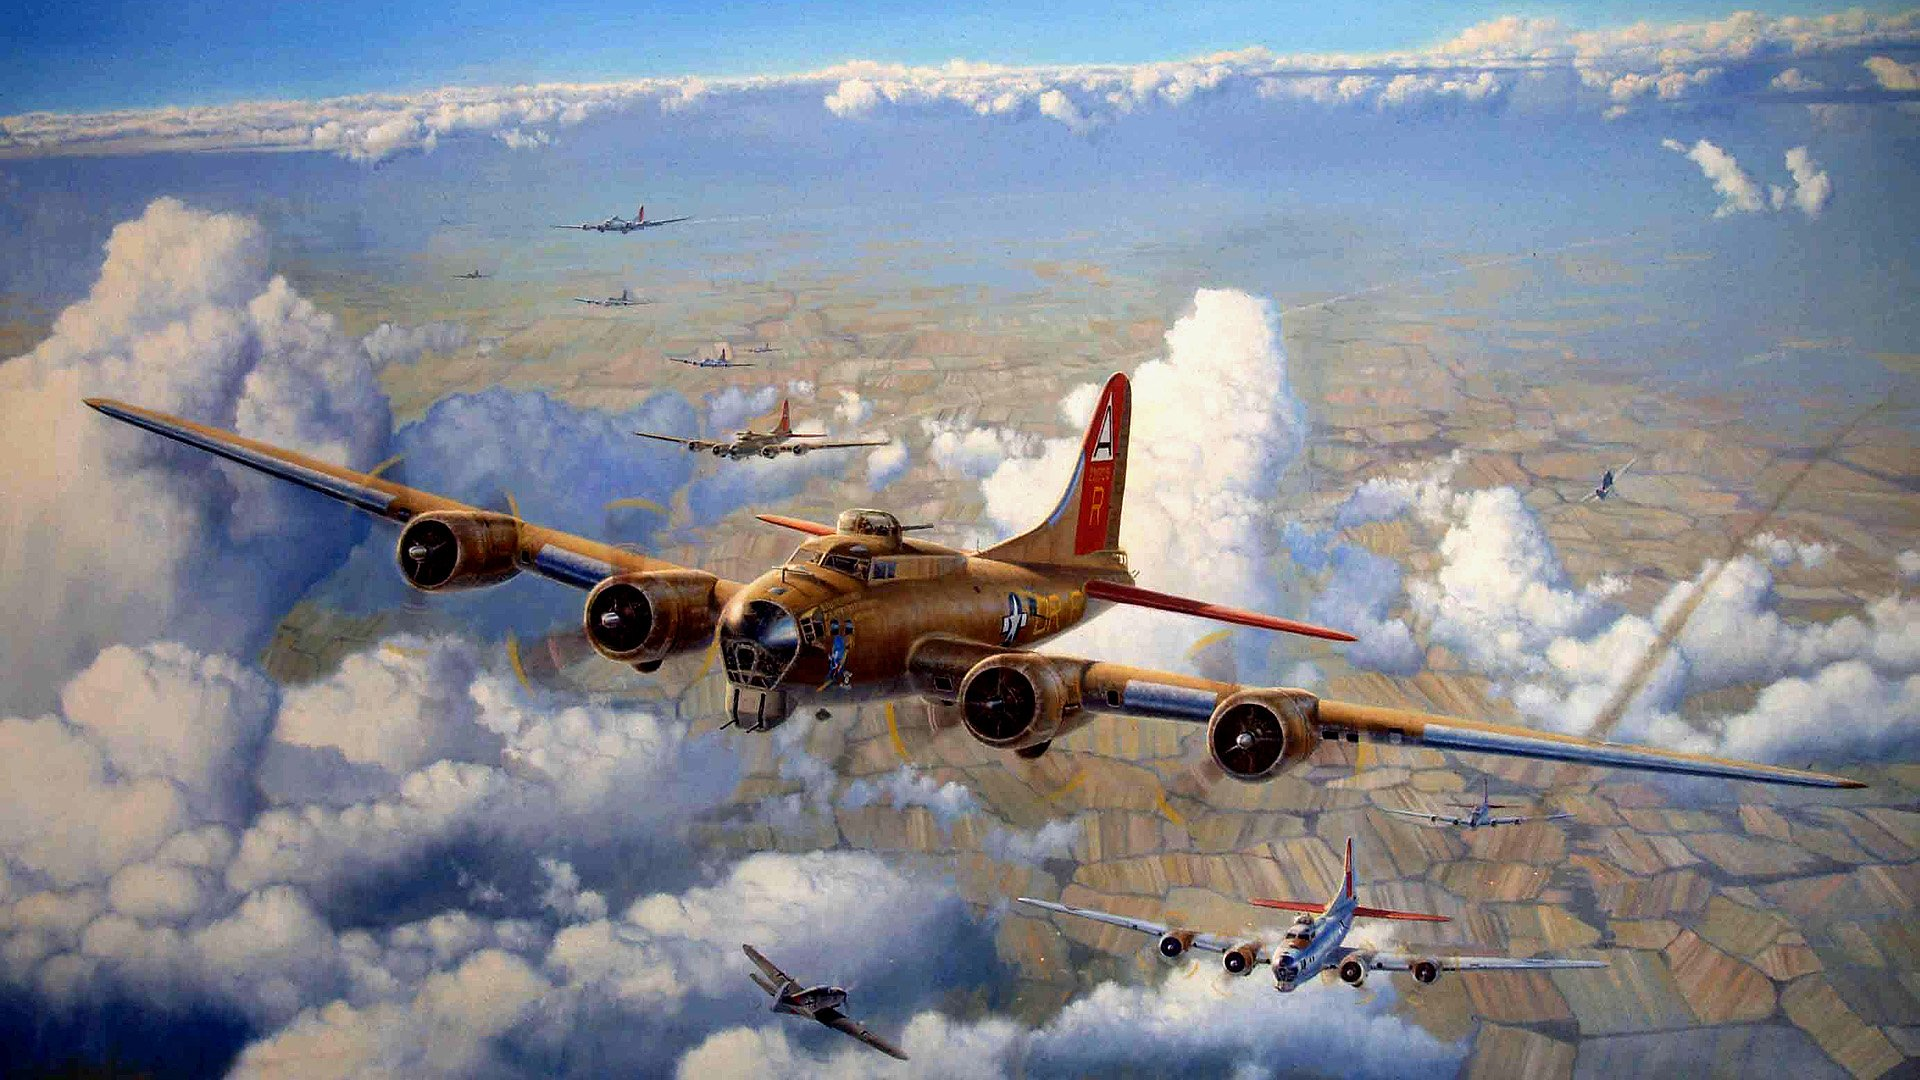 Flying Fortress HD Wallpaper Background Image 1920x1080 ID 1920x1080